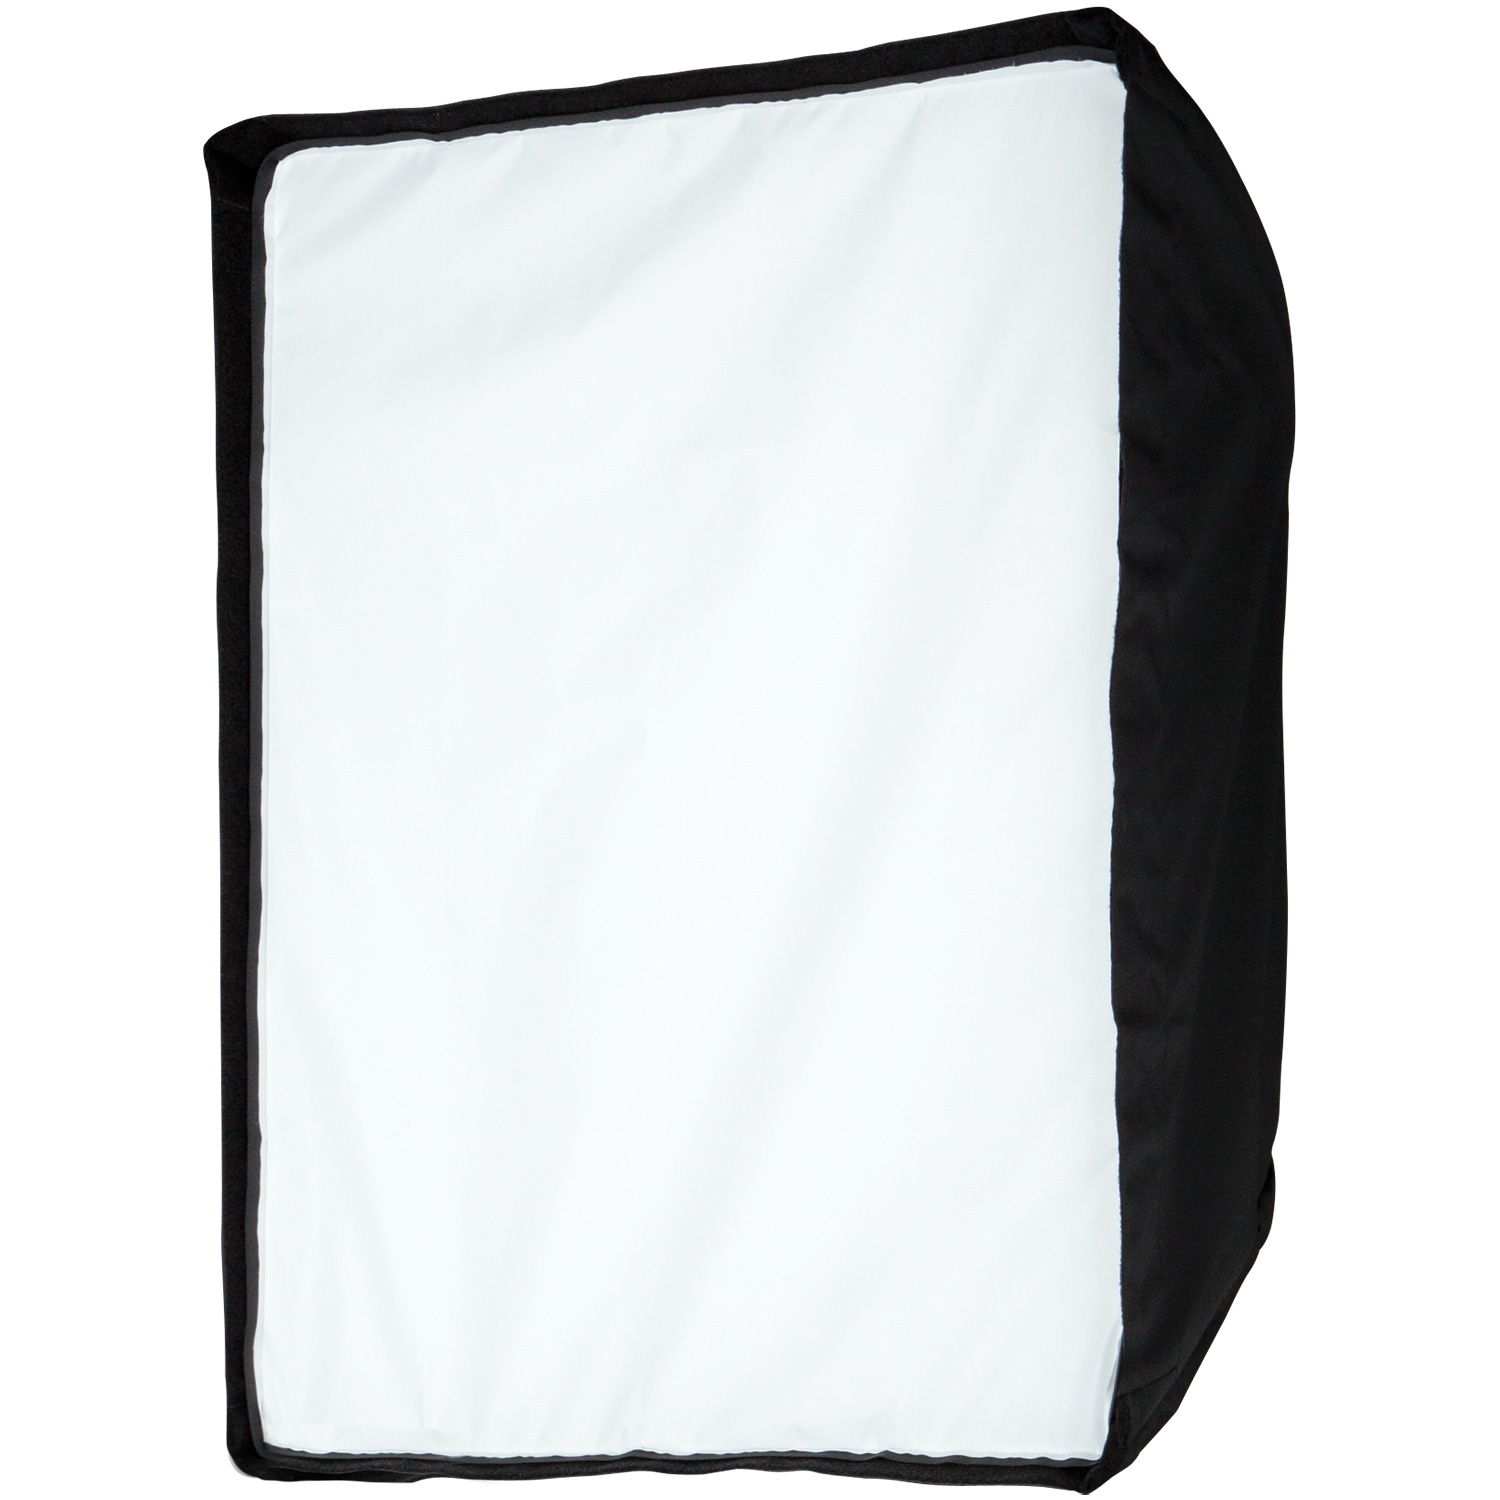 Pro Signature 24-in. x 32-in. White Interior Softbox